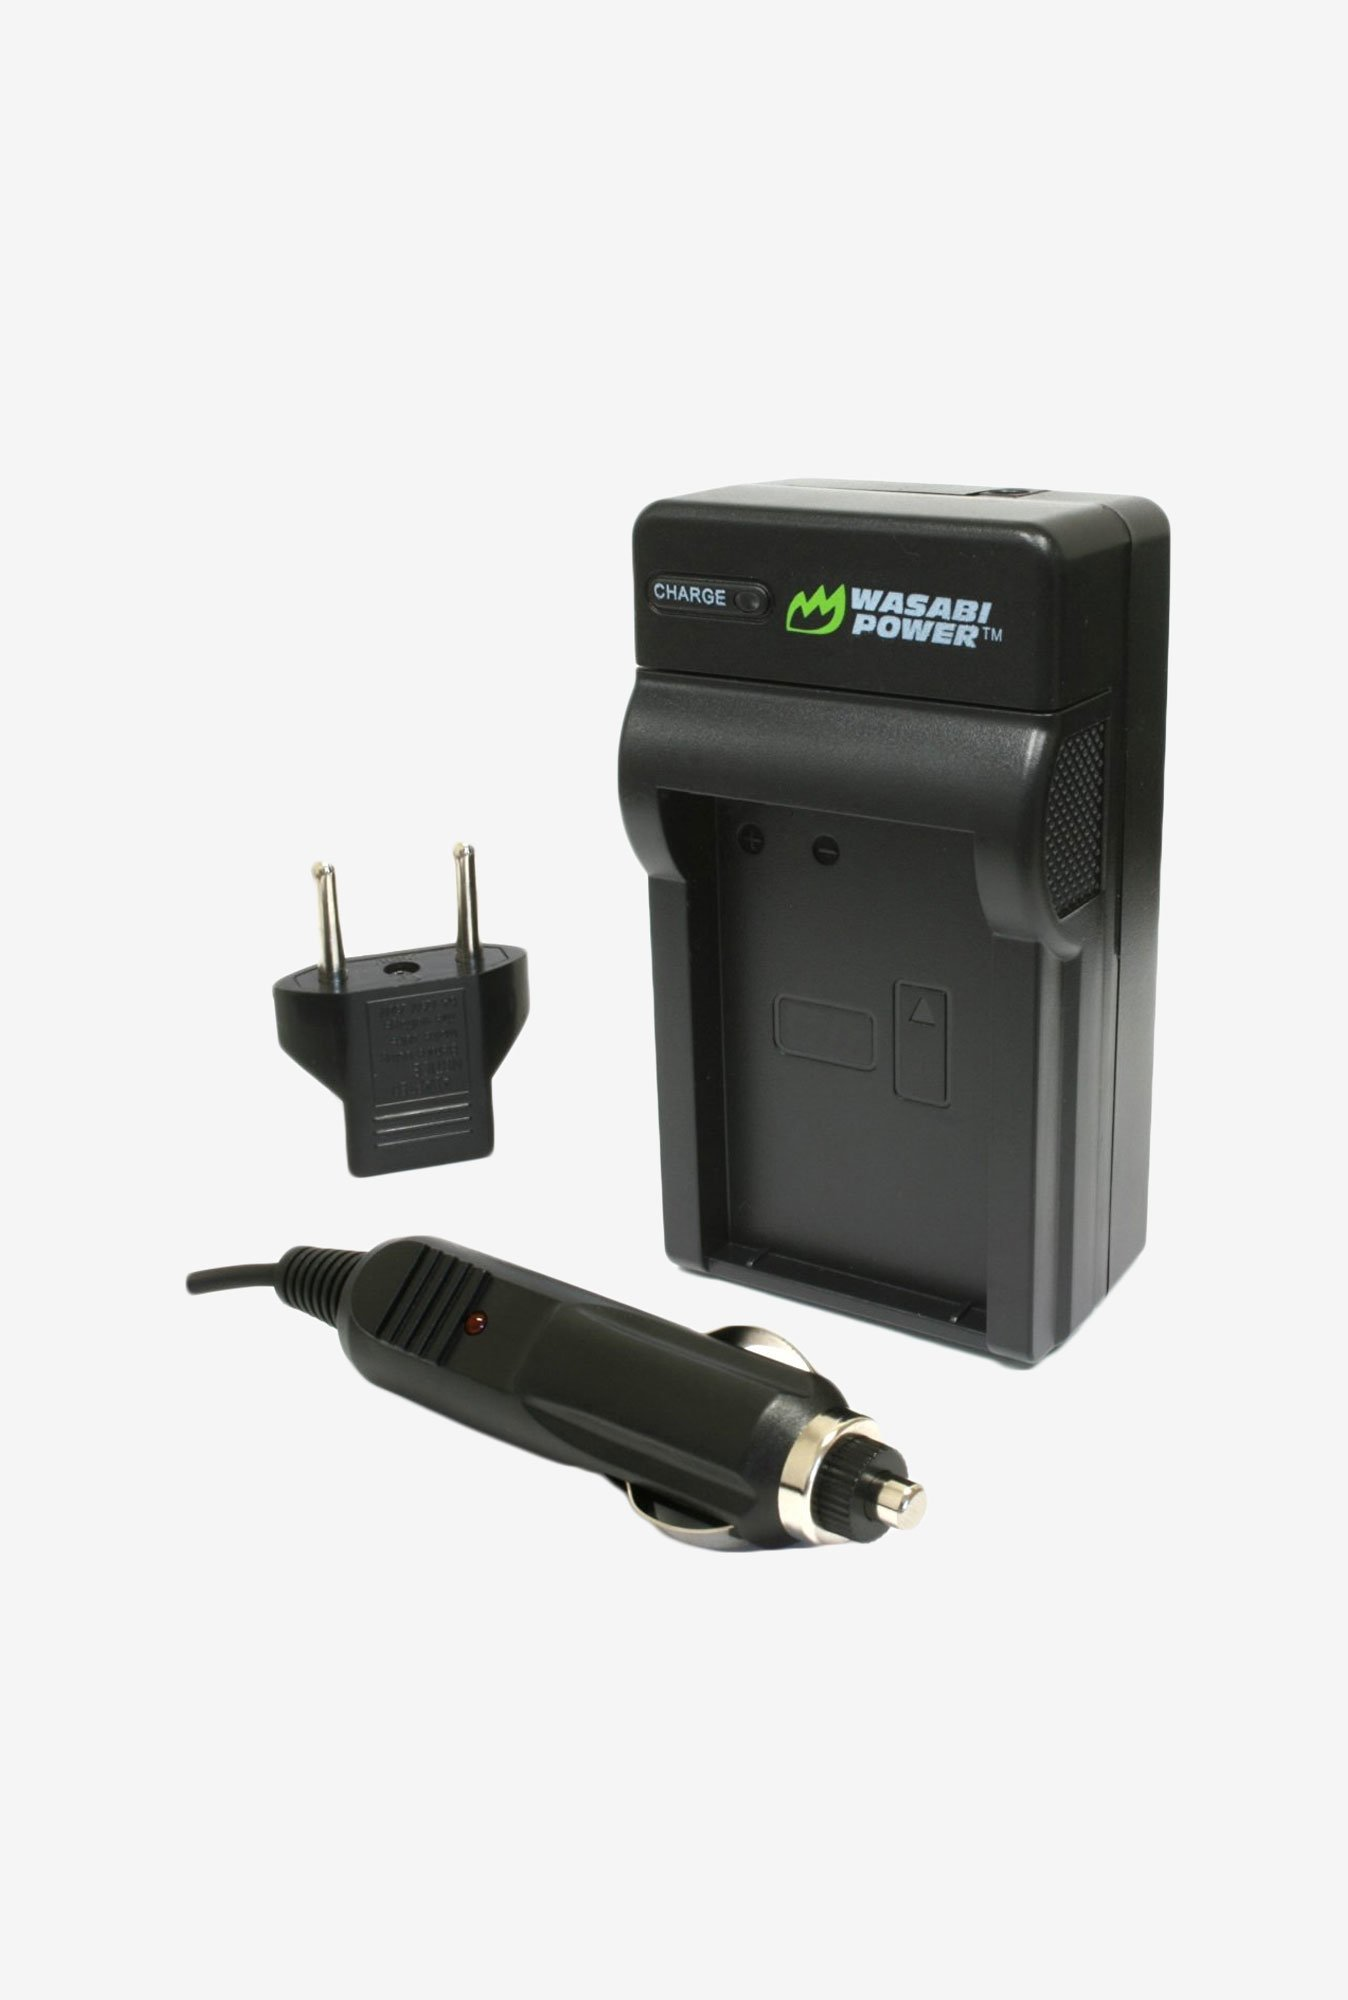 Wasabi Power Battery Charger for Panasonic (Black)